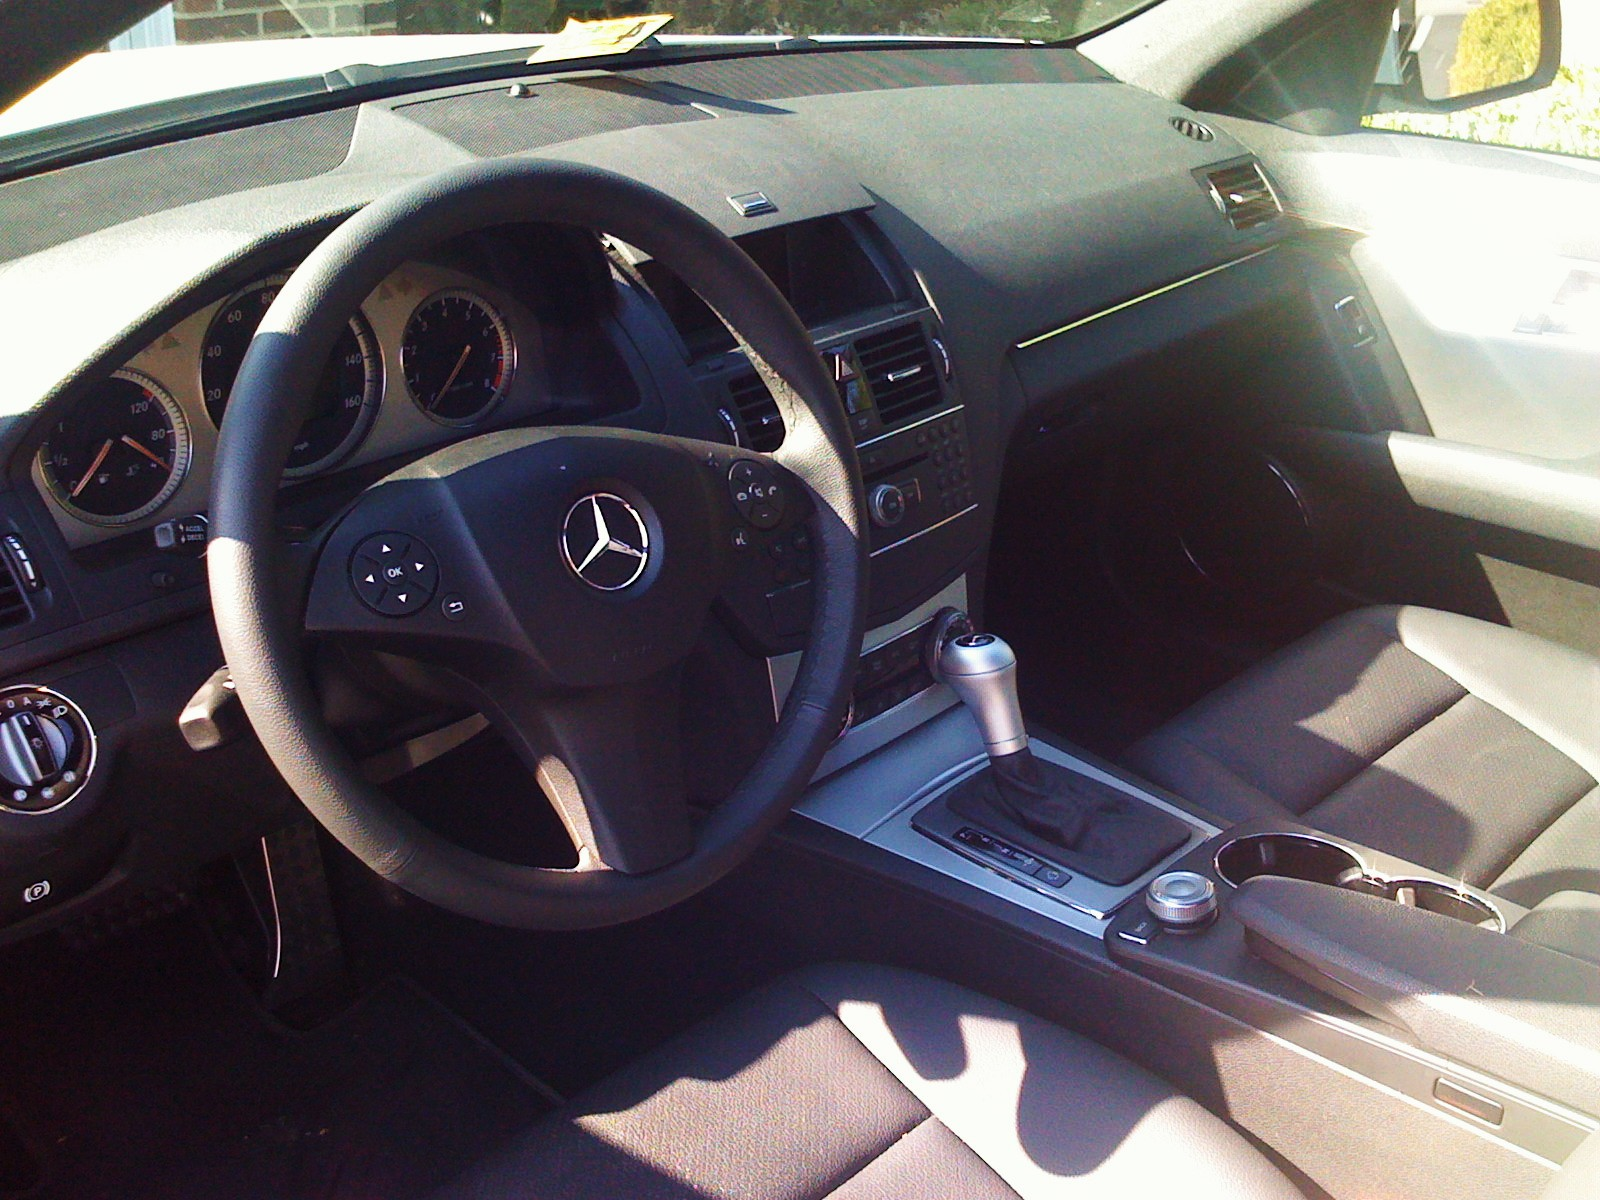 hight resolution of 2008 mercedes benz c class c300 sport picture interior